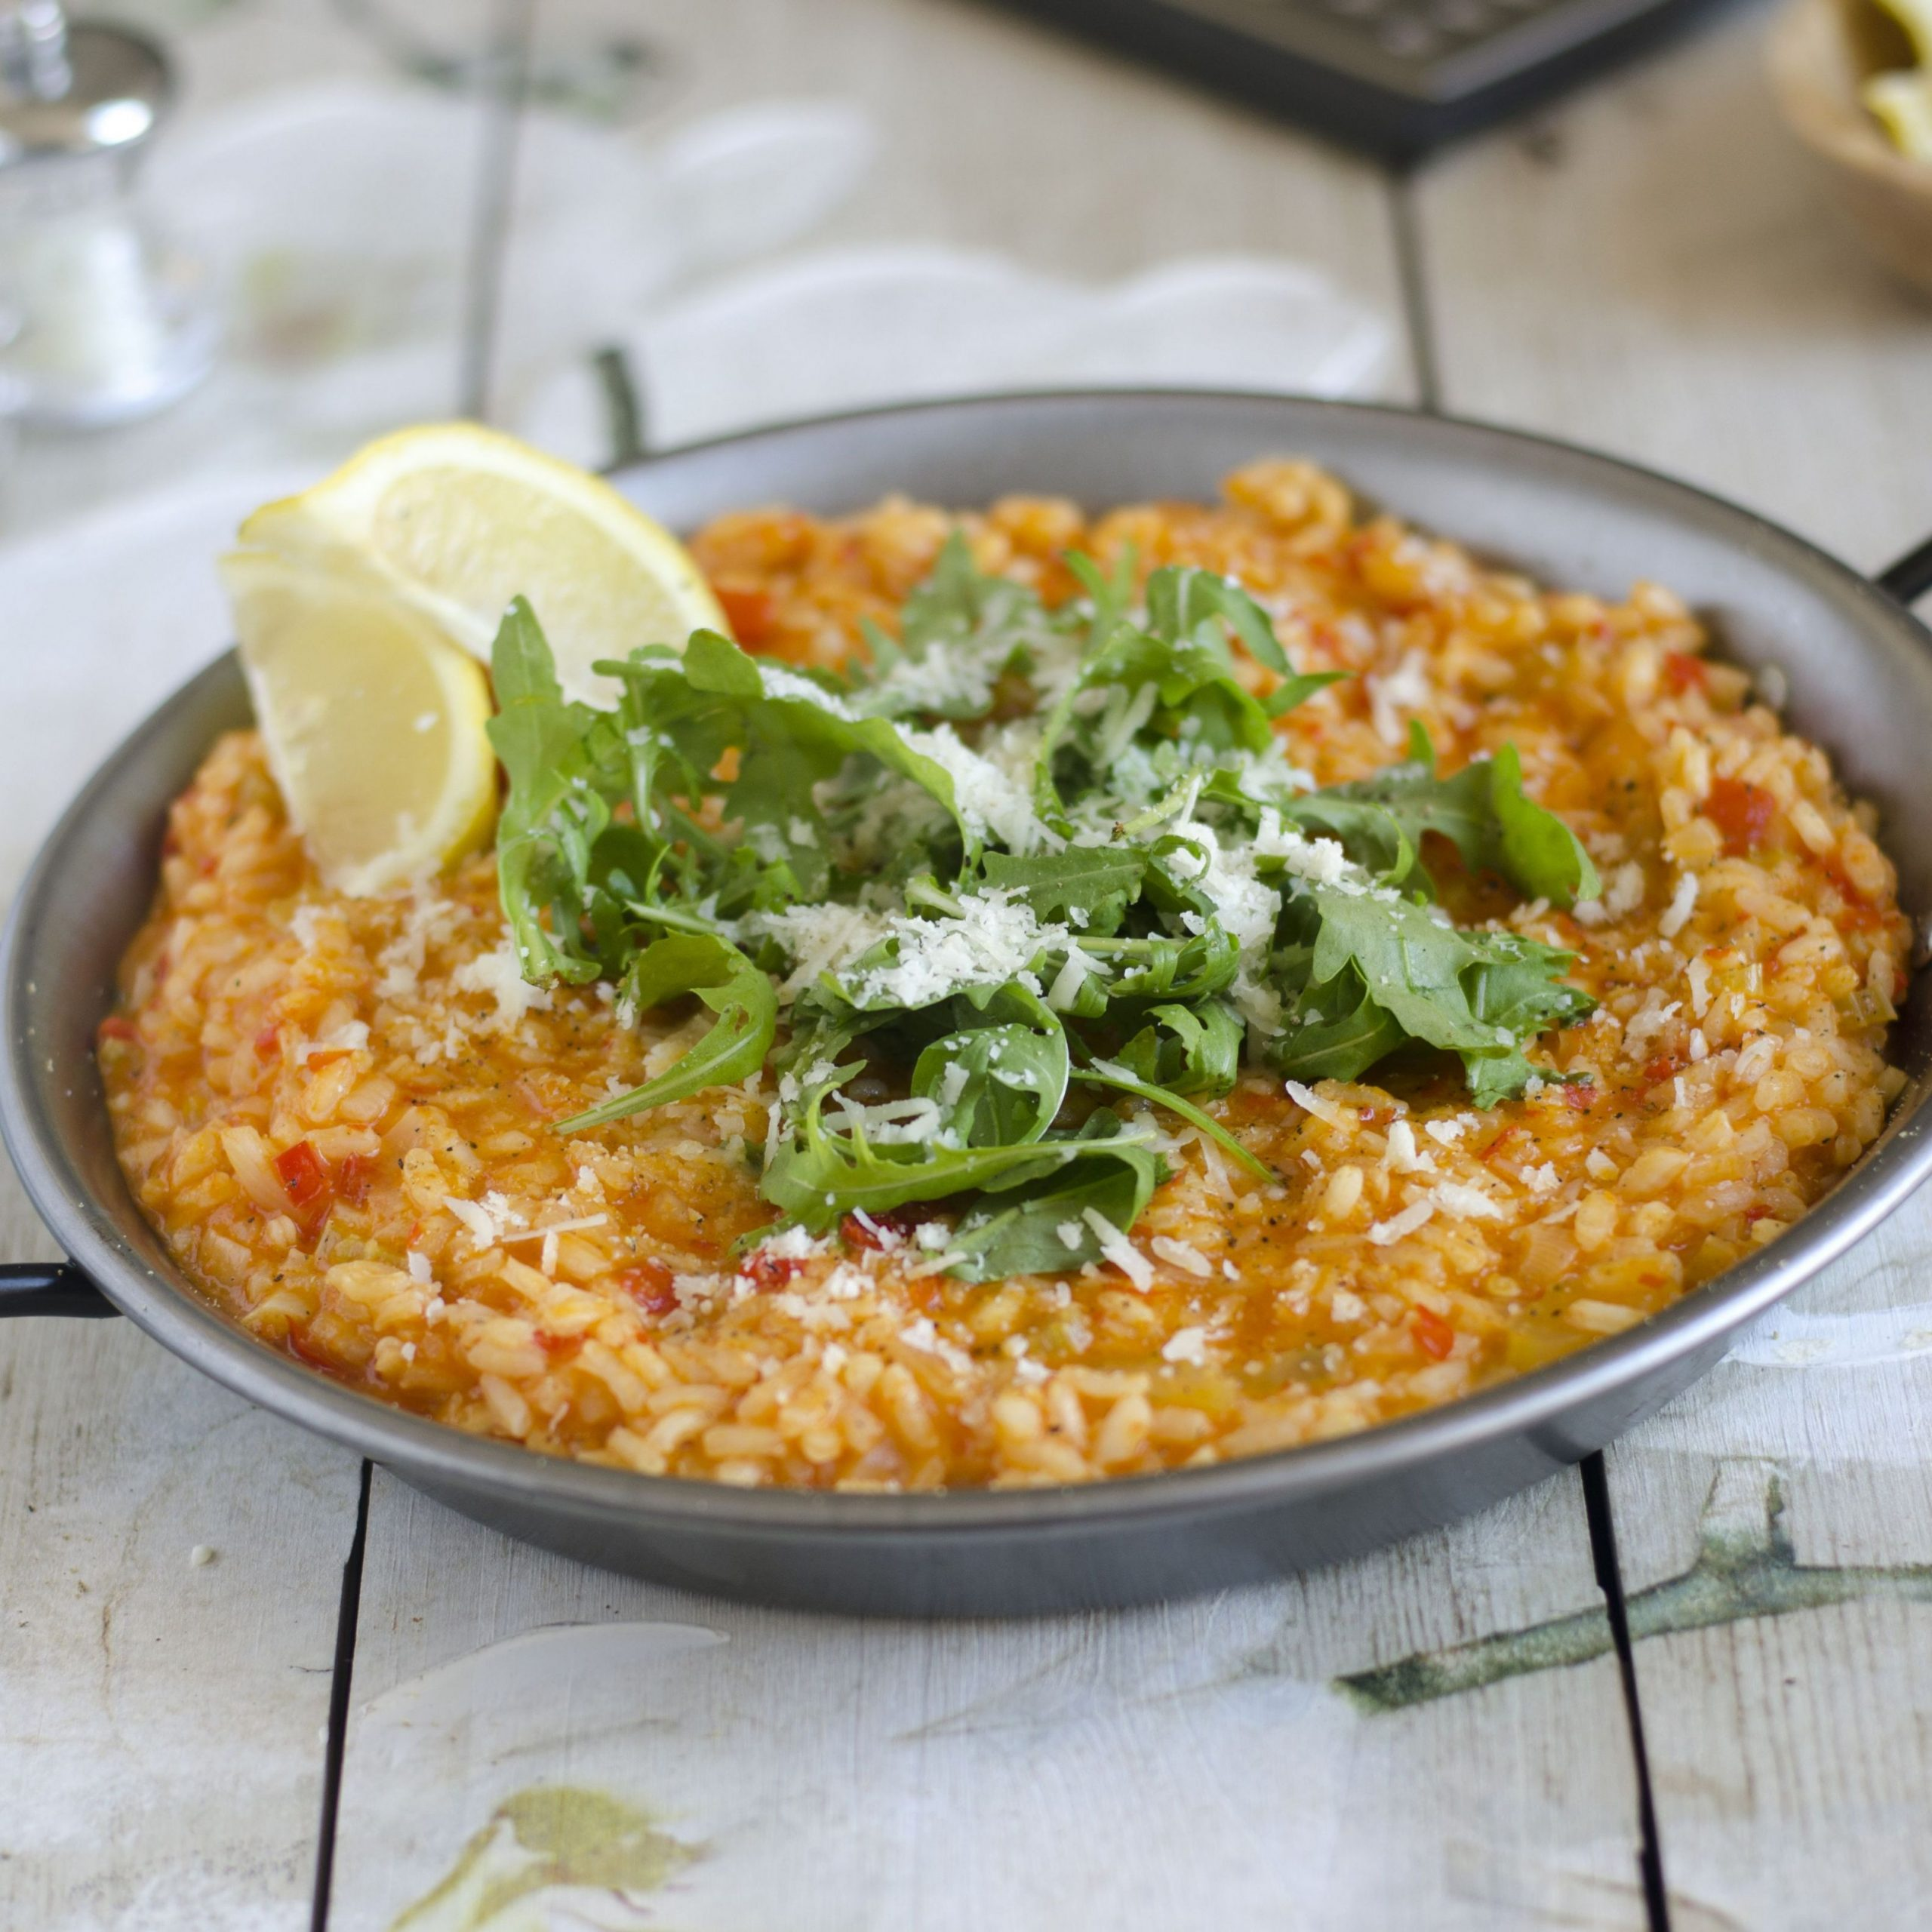 Spicy Risotto with Red Pepper Recipe - Recipes For Vegetable Risotto